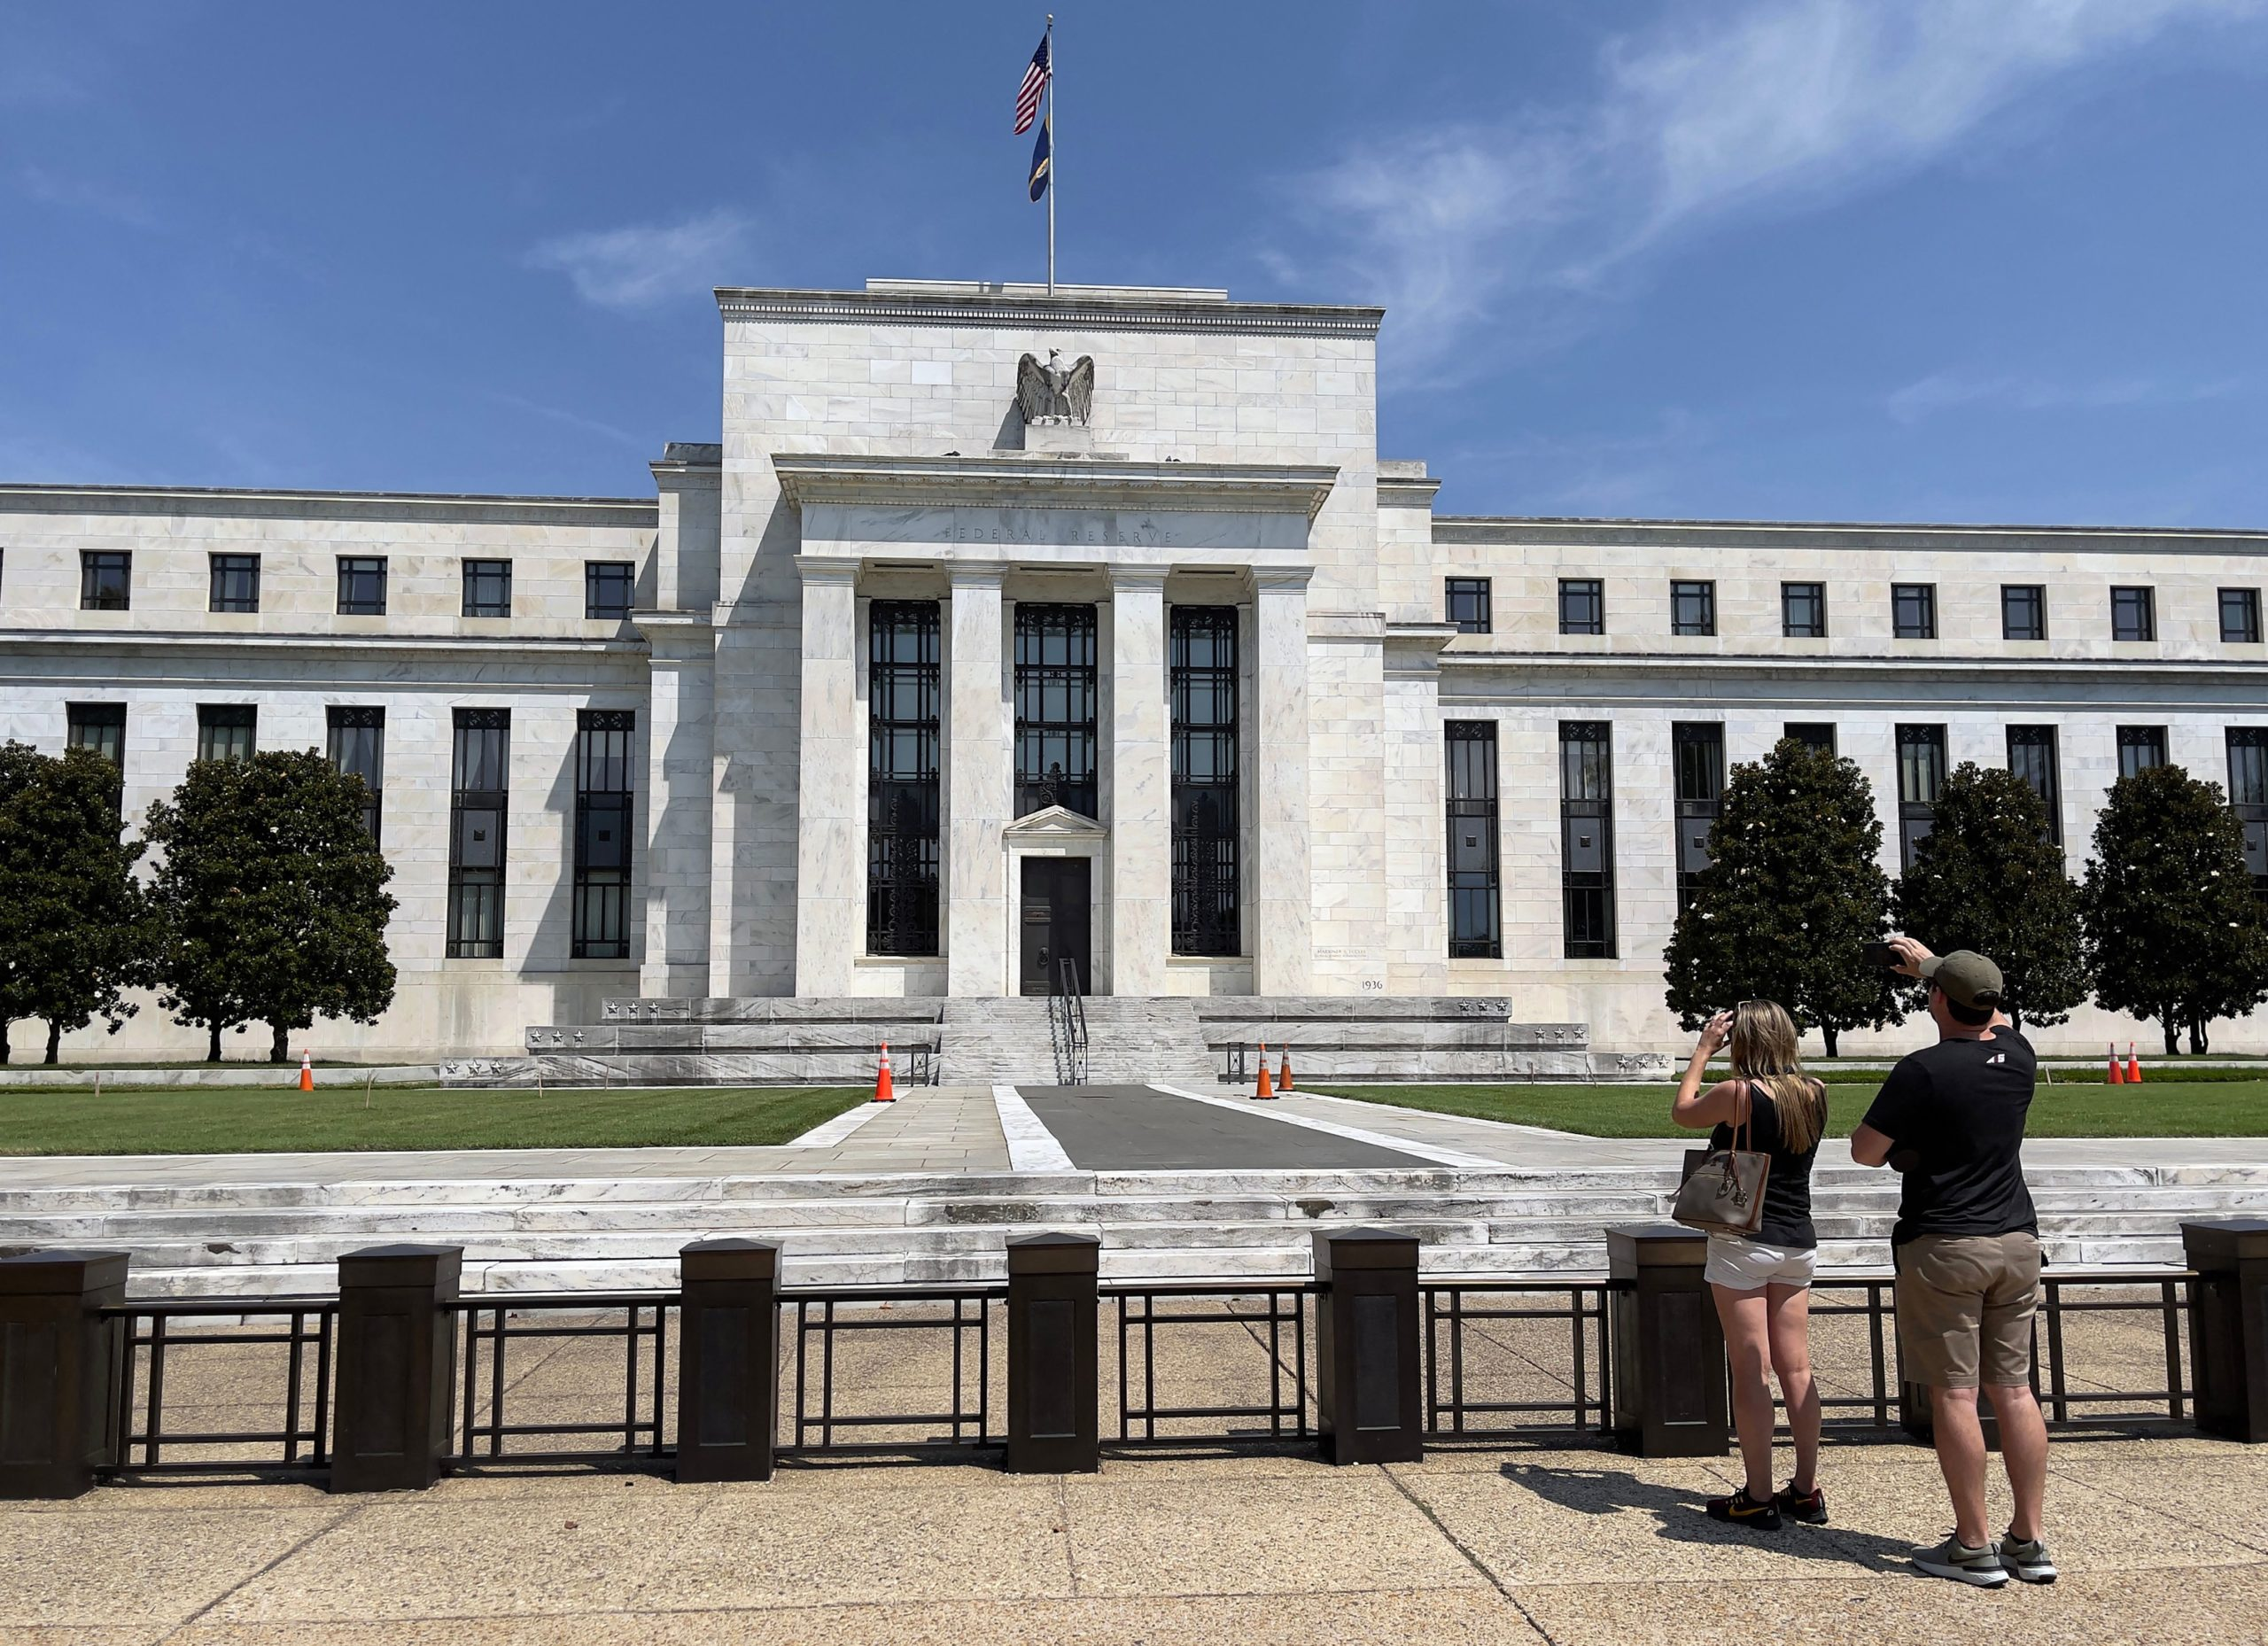 People take pictures of the Federal Reserve building in Washington, D.C. on Aug. 6. (Daniel Slim/AFP via Getty Images)